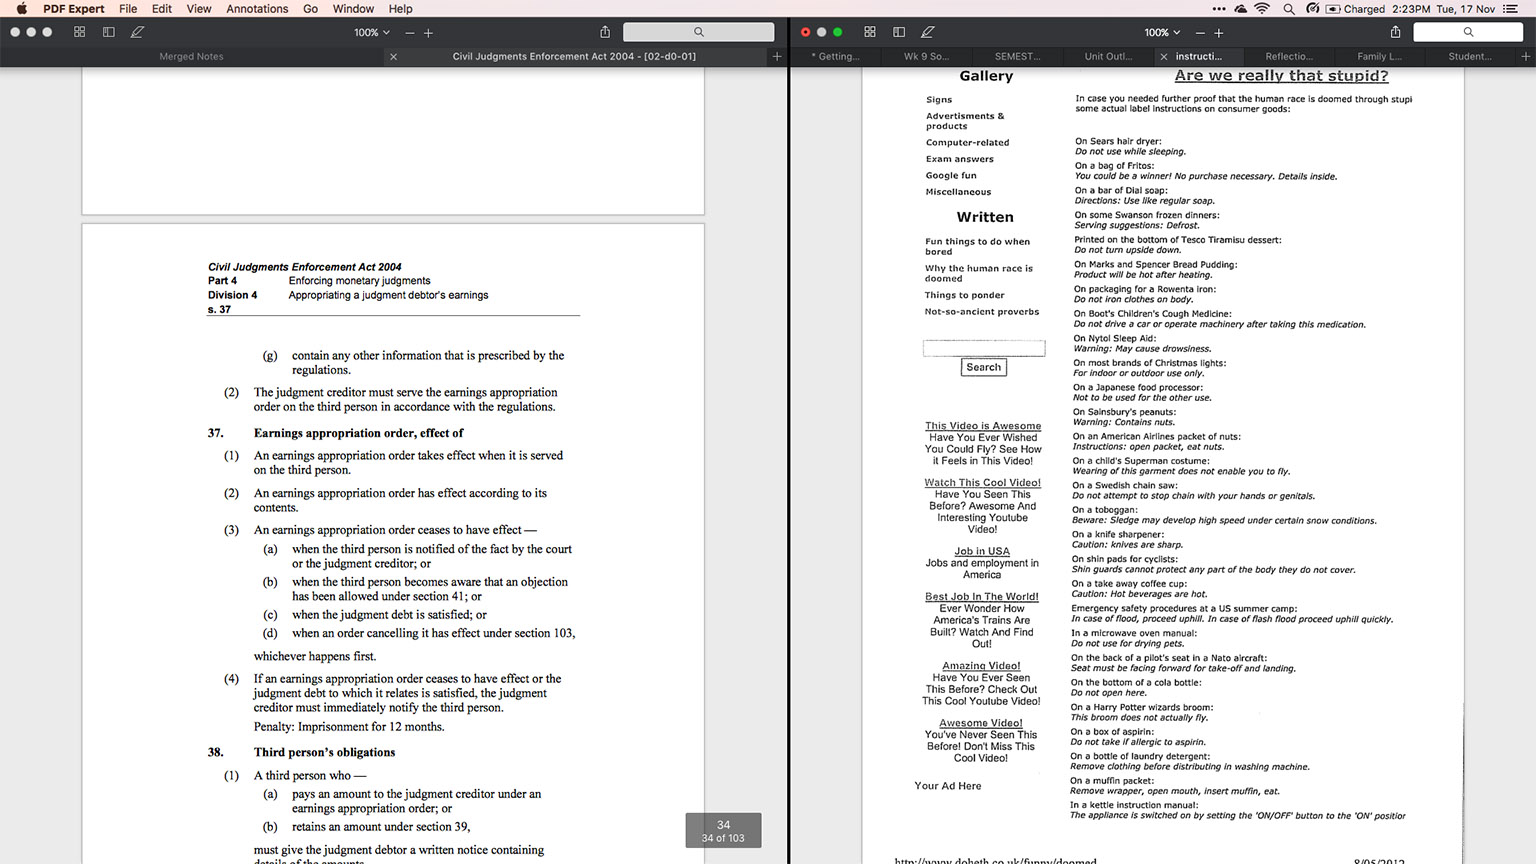 Two windows of PDF Expert, each with multiple tabs, in Split-Screen Mode on OS X Yosemite